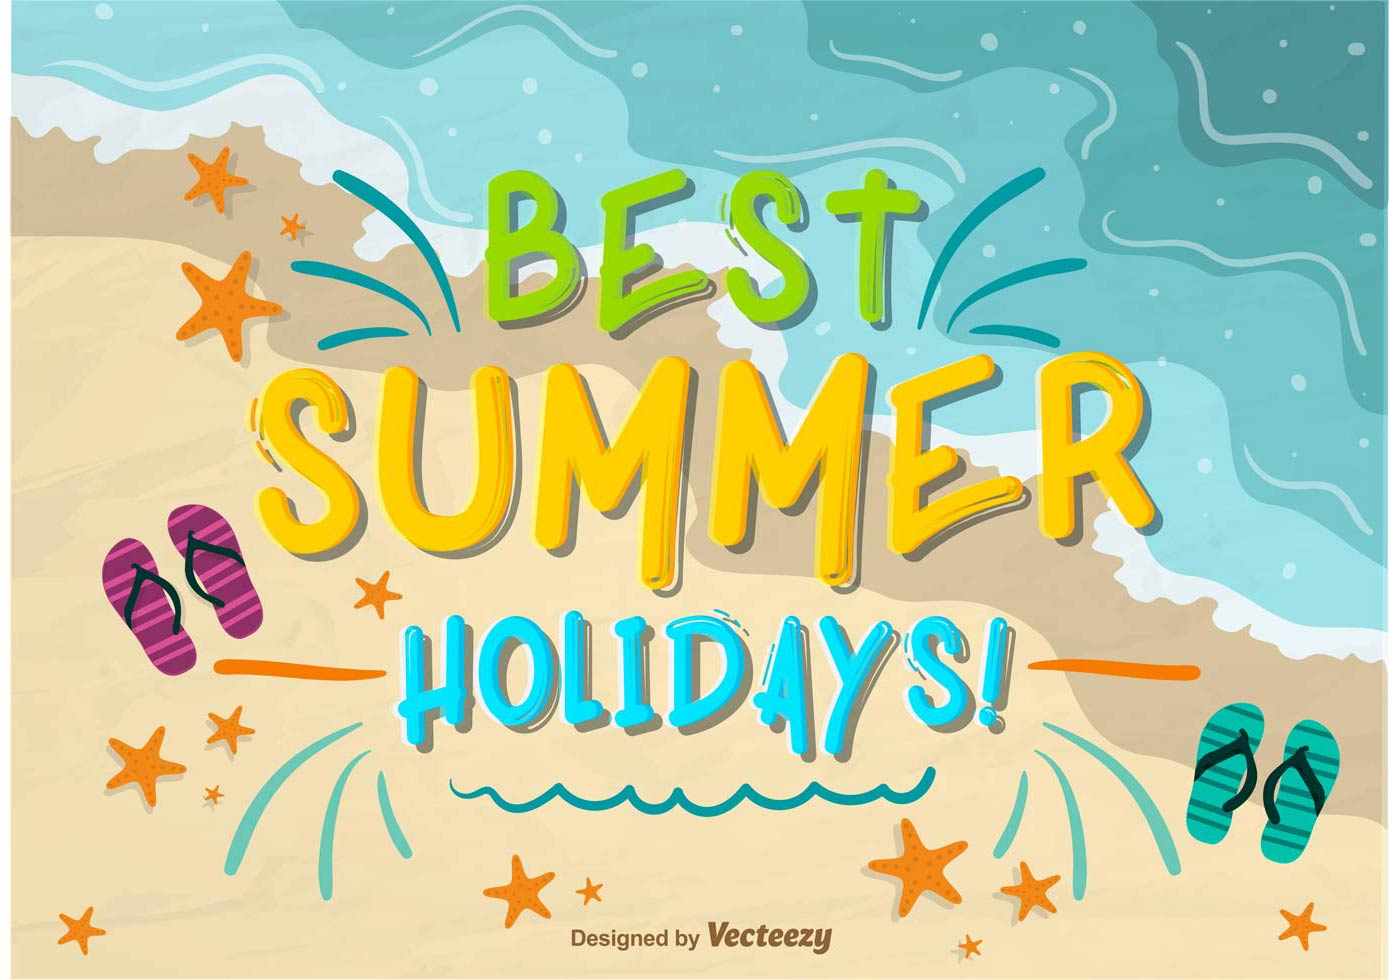 how best to utilize your summer holidays Compare flights, create your own holidays and book online - or use it for research then phone around the high street chains and haggle link: travelzoocouk 10.